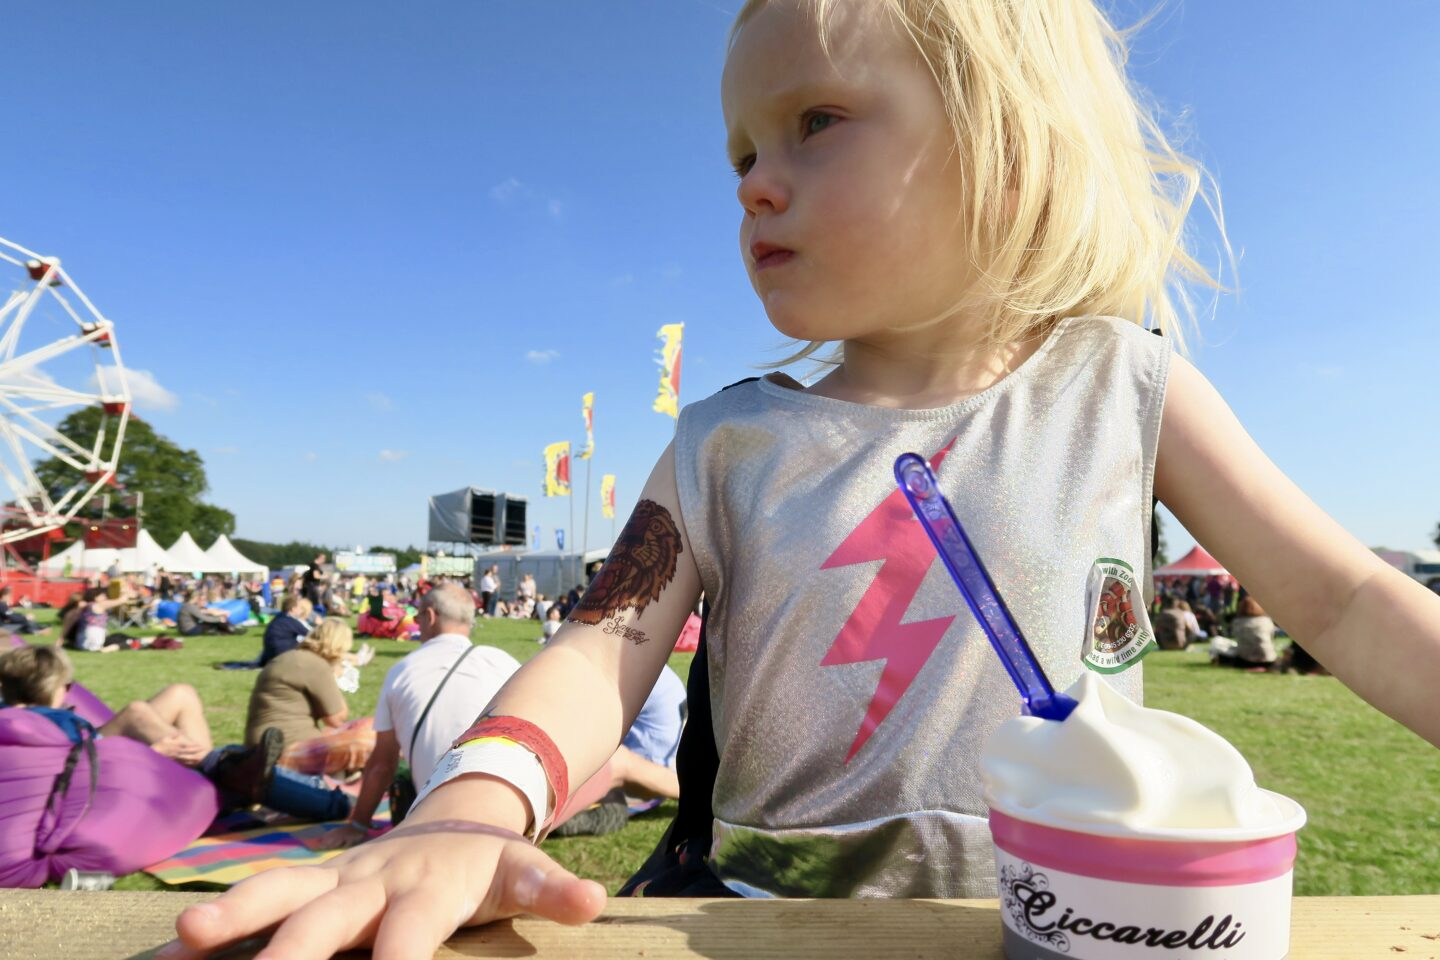 Top 5 family-friendly music camping festivals near North